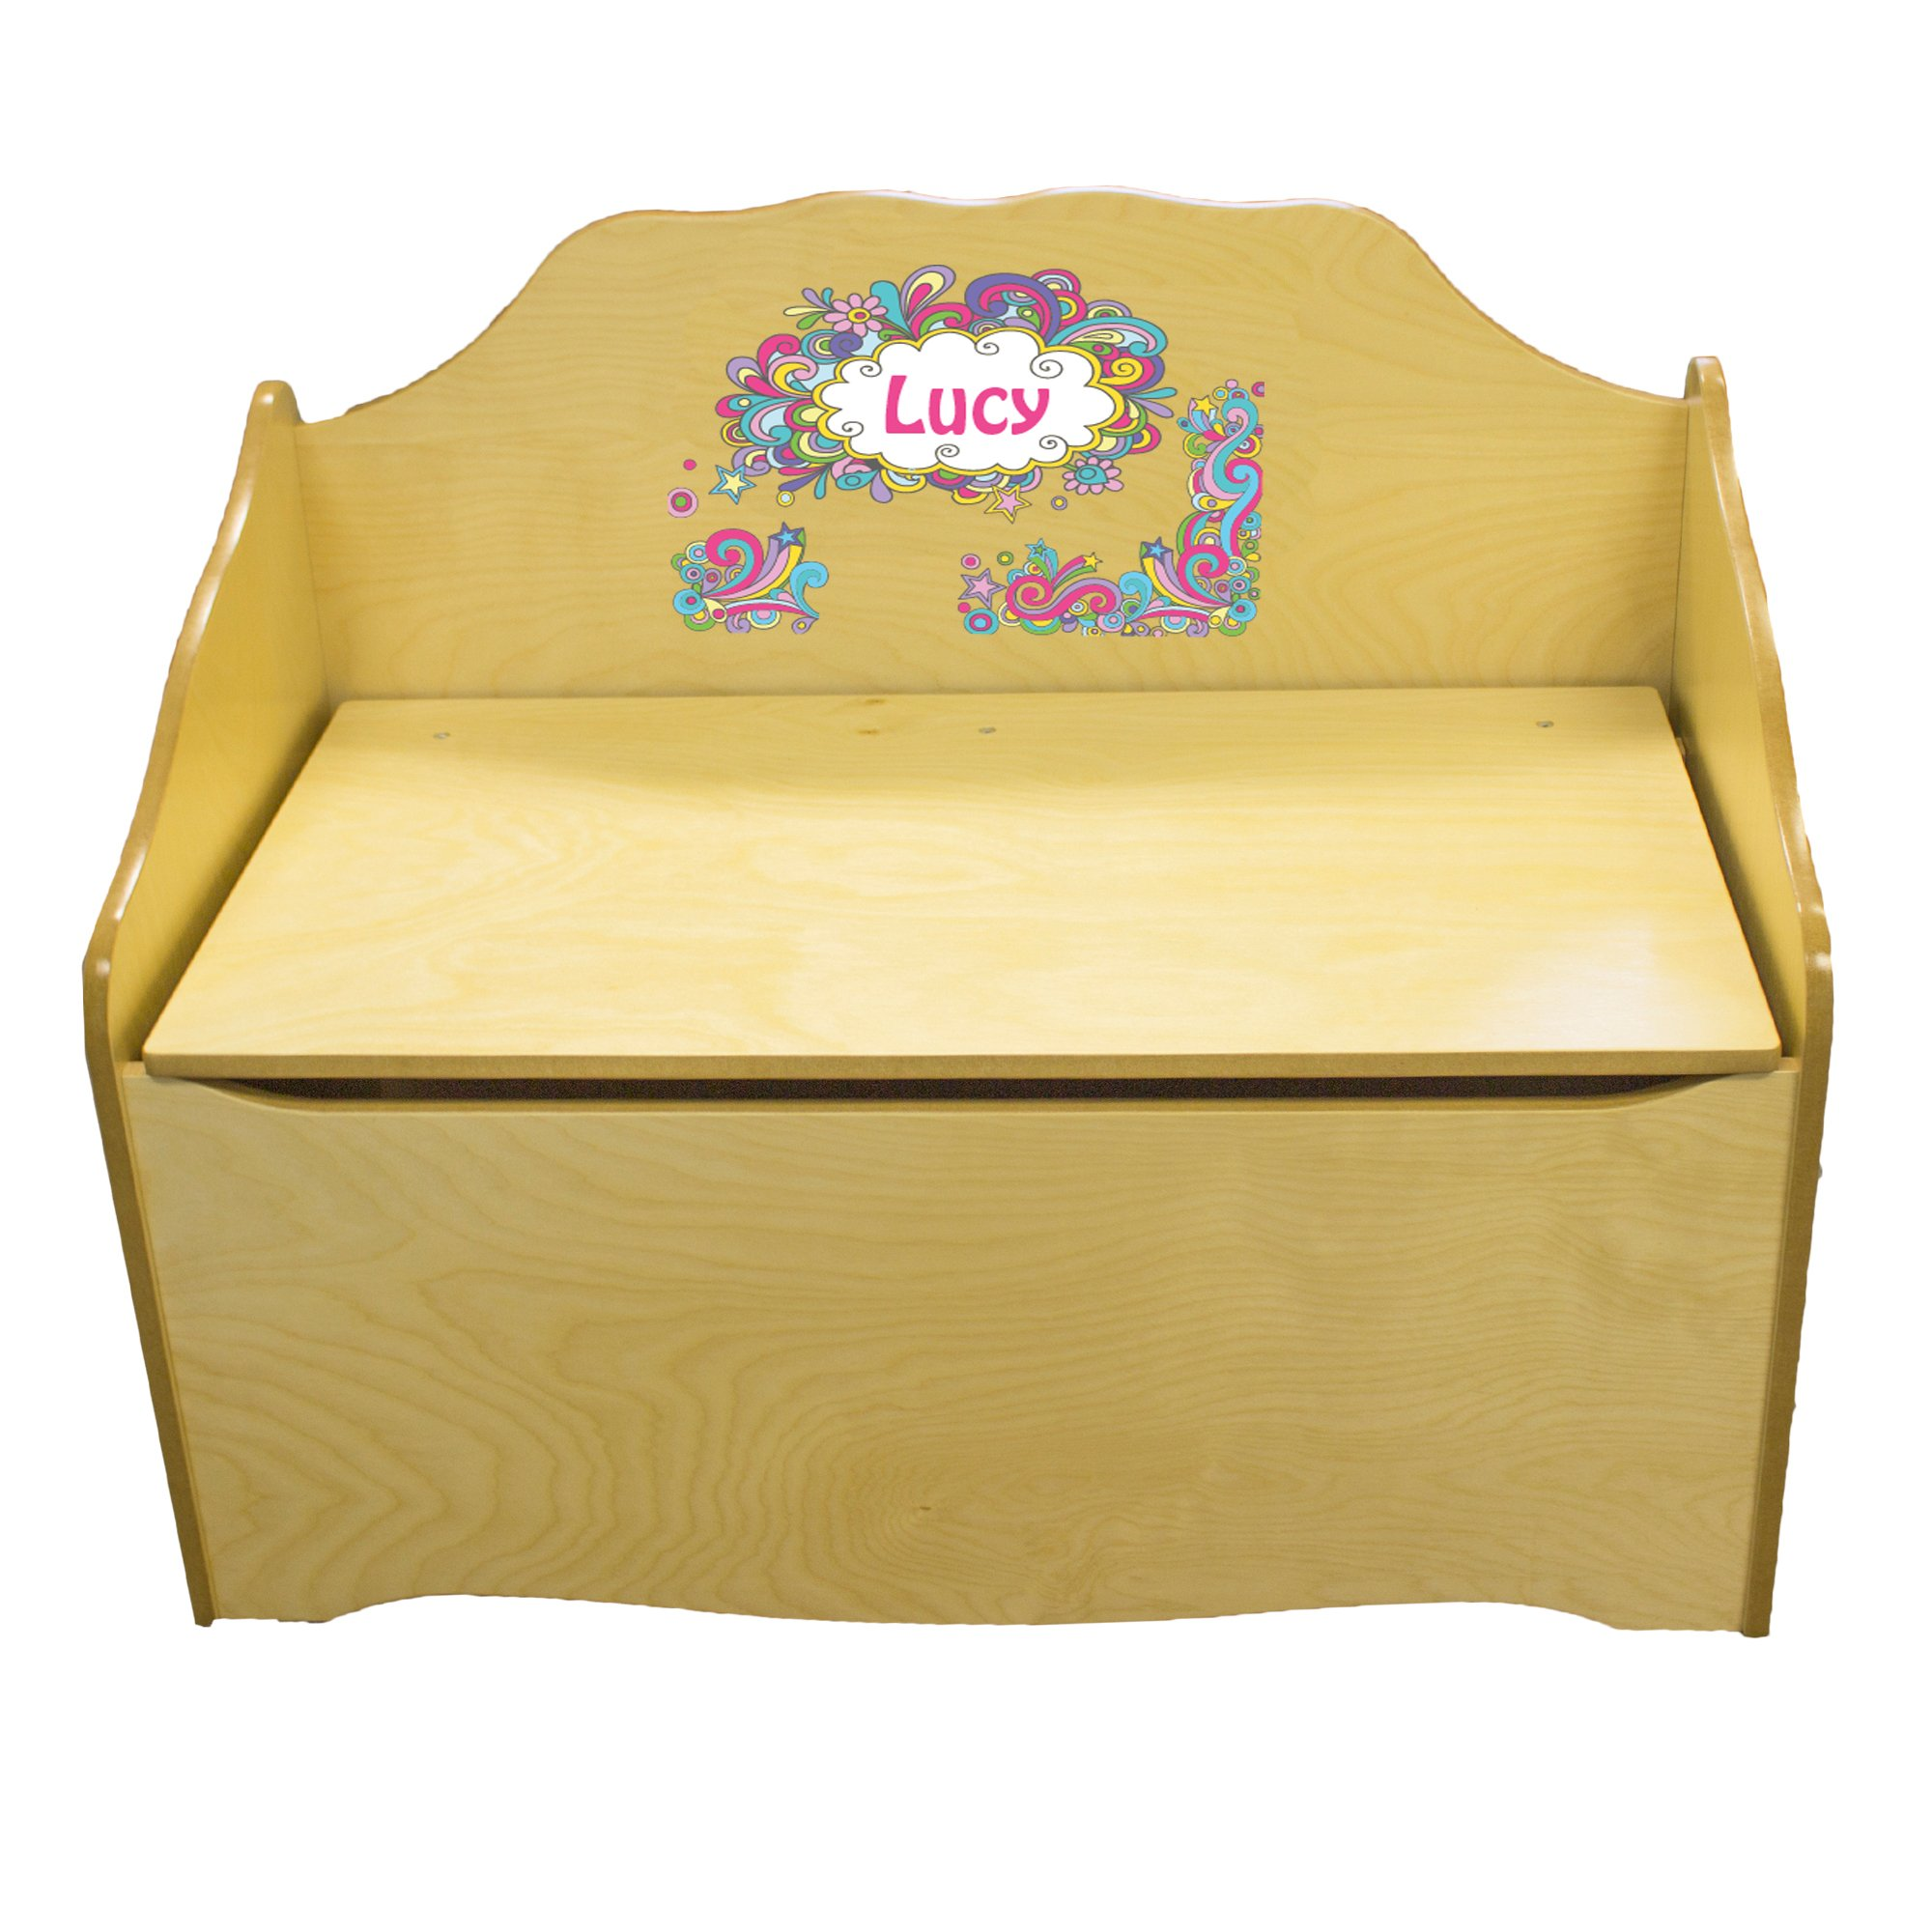 Personalized Groovy Swirl Childrens Natural Wooden Toy Chest